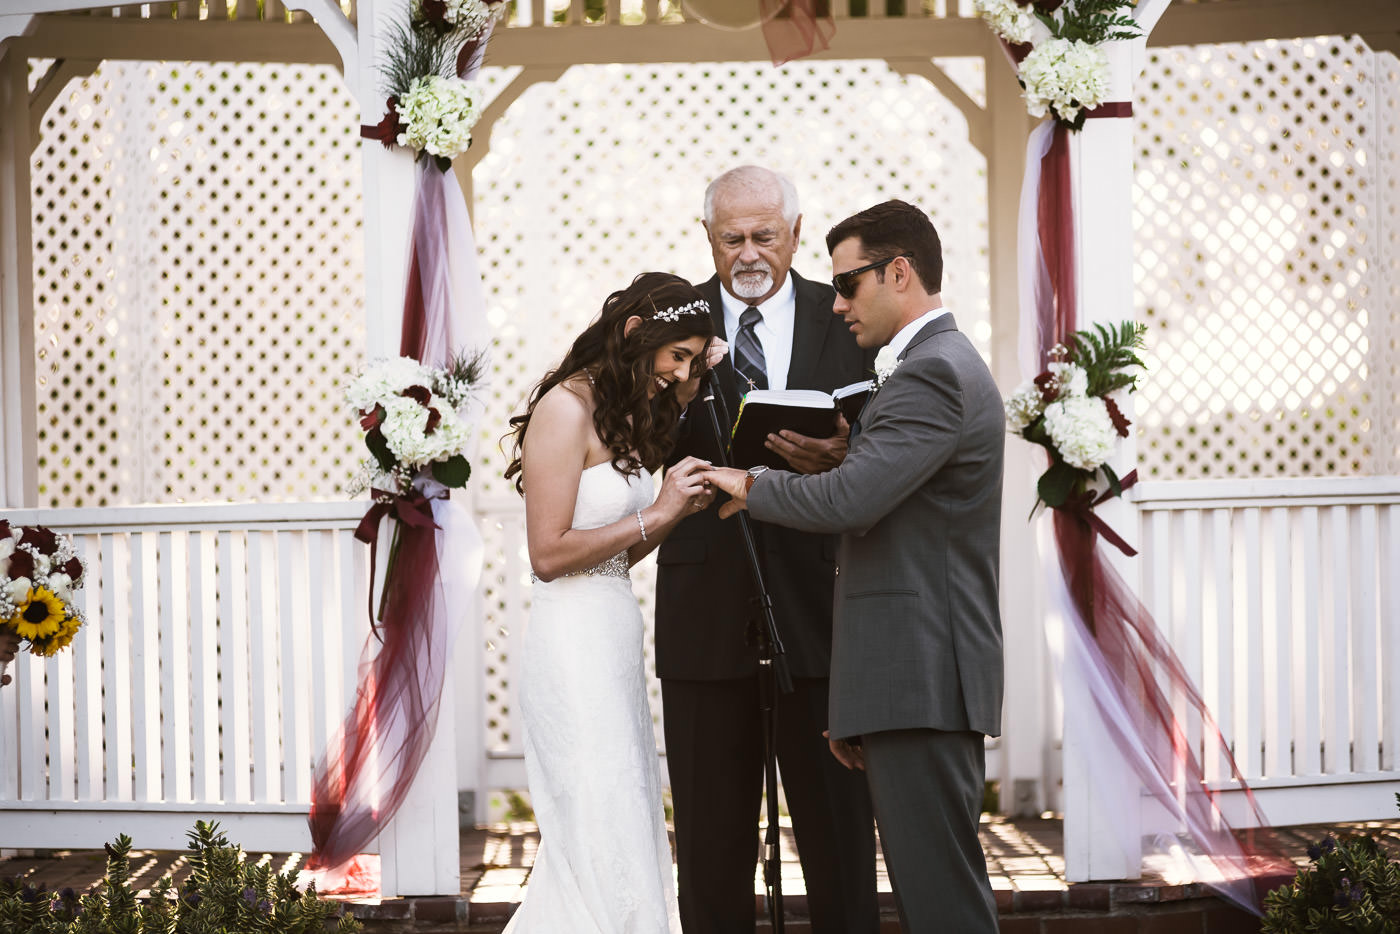 Beautiful bride places the wedding ring on her husbands finger during the marriage ceremony.